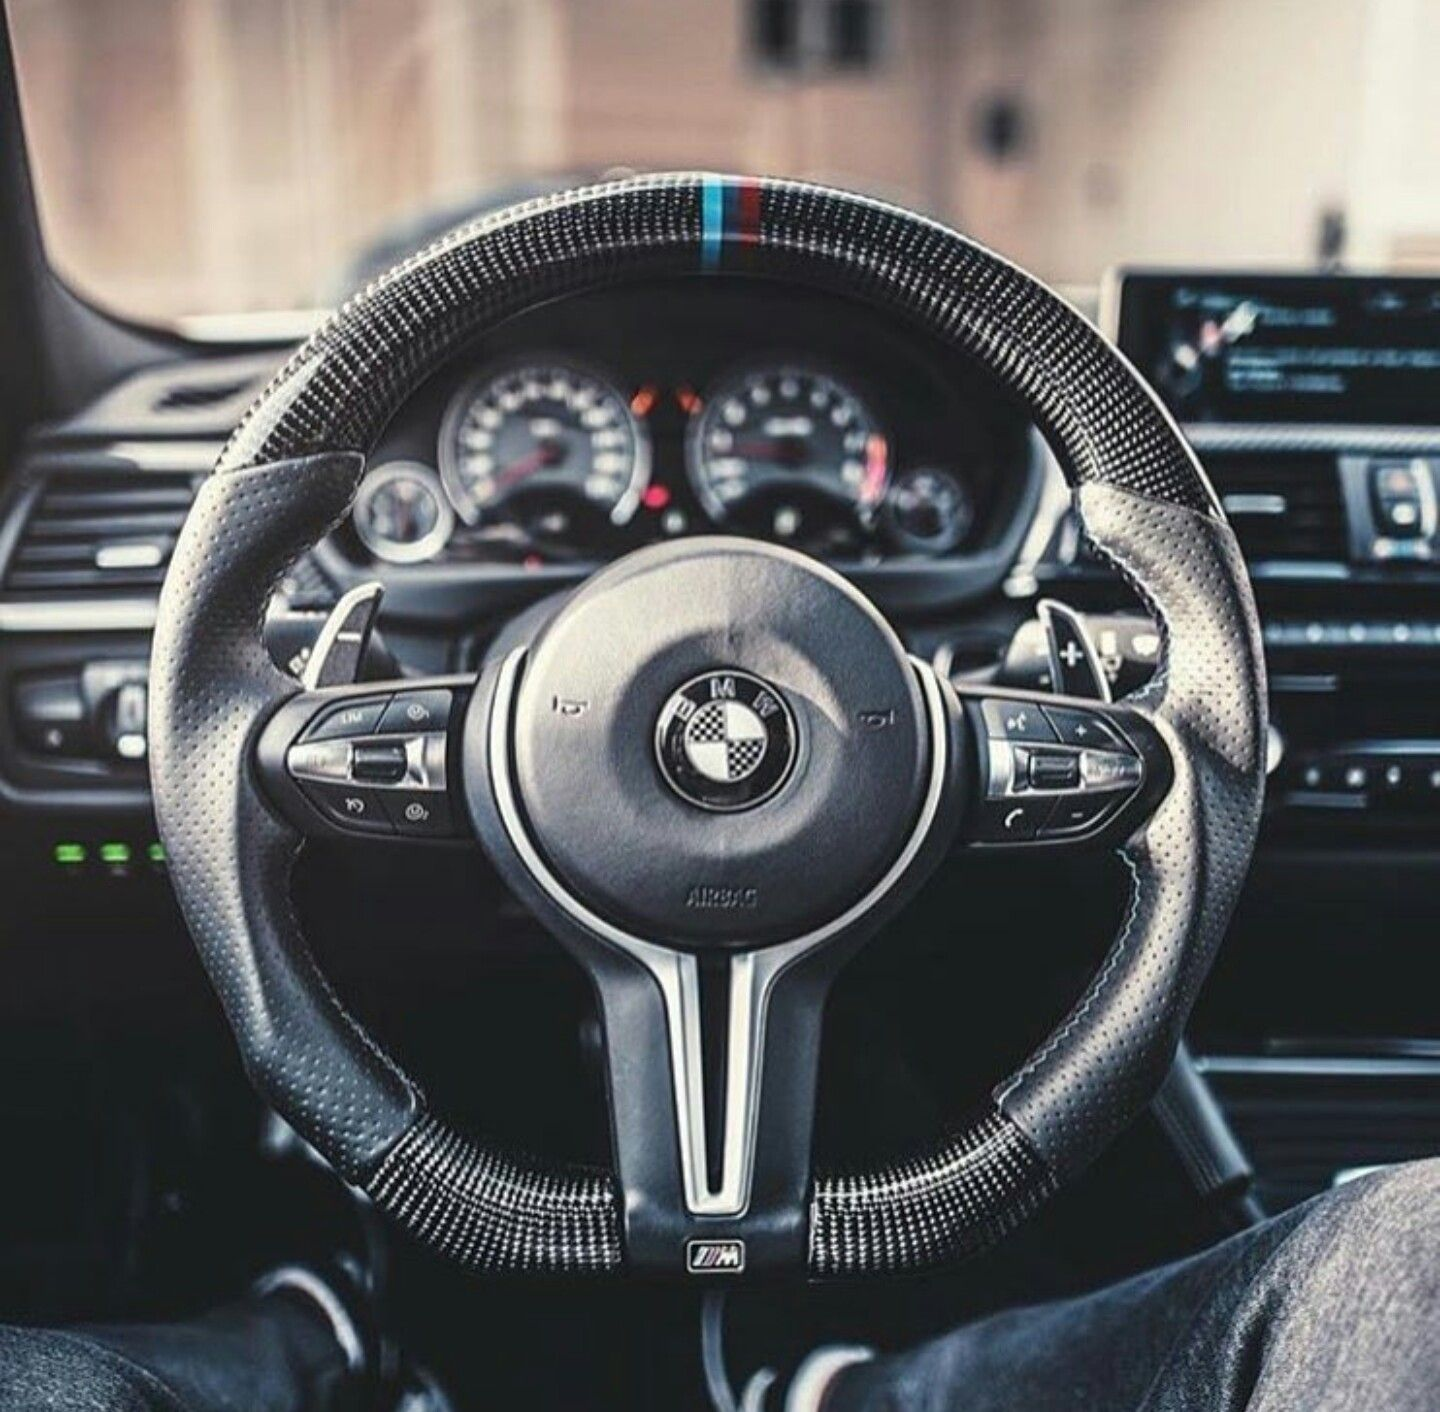 Black magic the bmw x6 with mperformance parts car interior pinterest bmw x6 bmw and cars